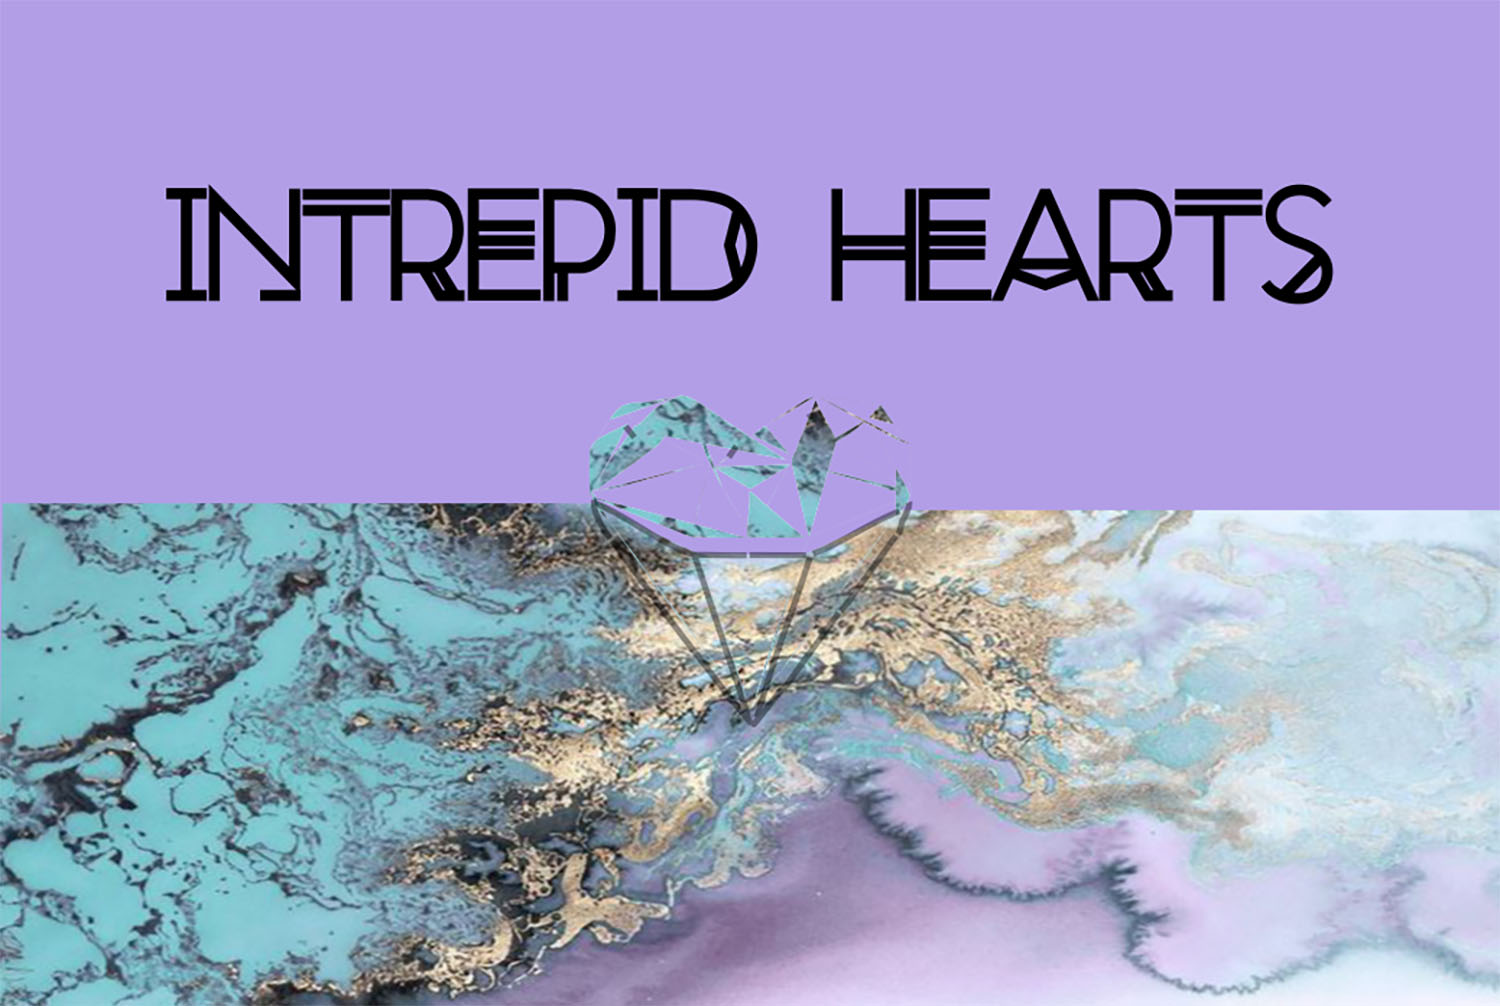 Intrepid Hearts